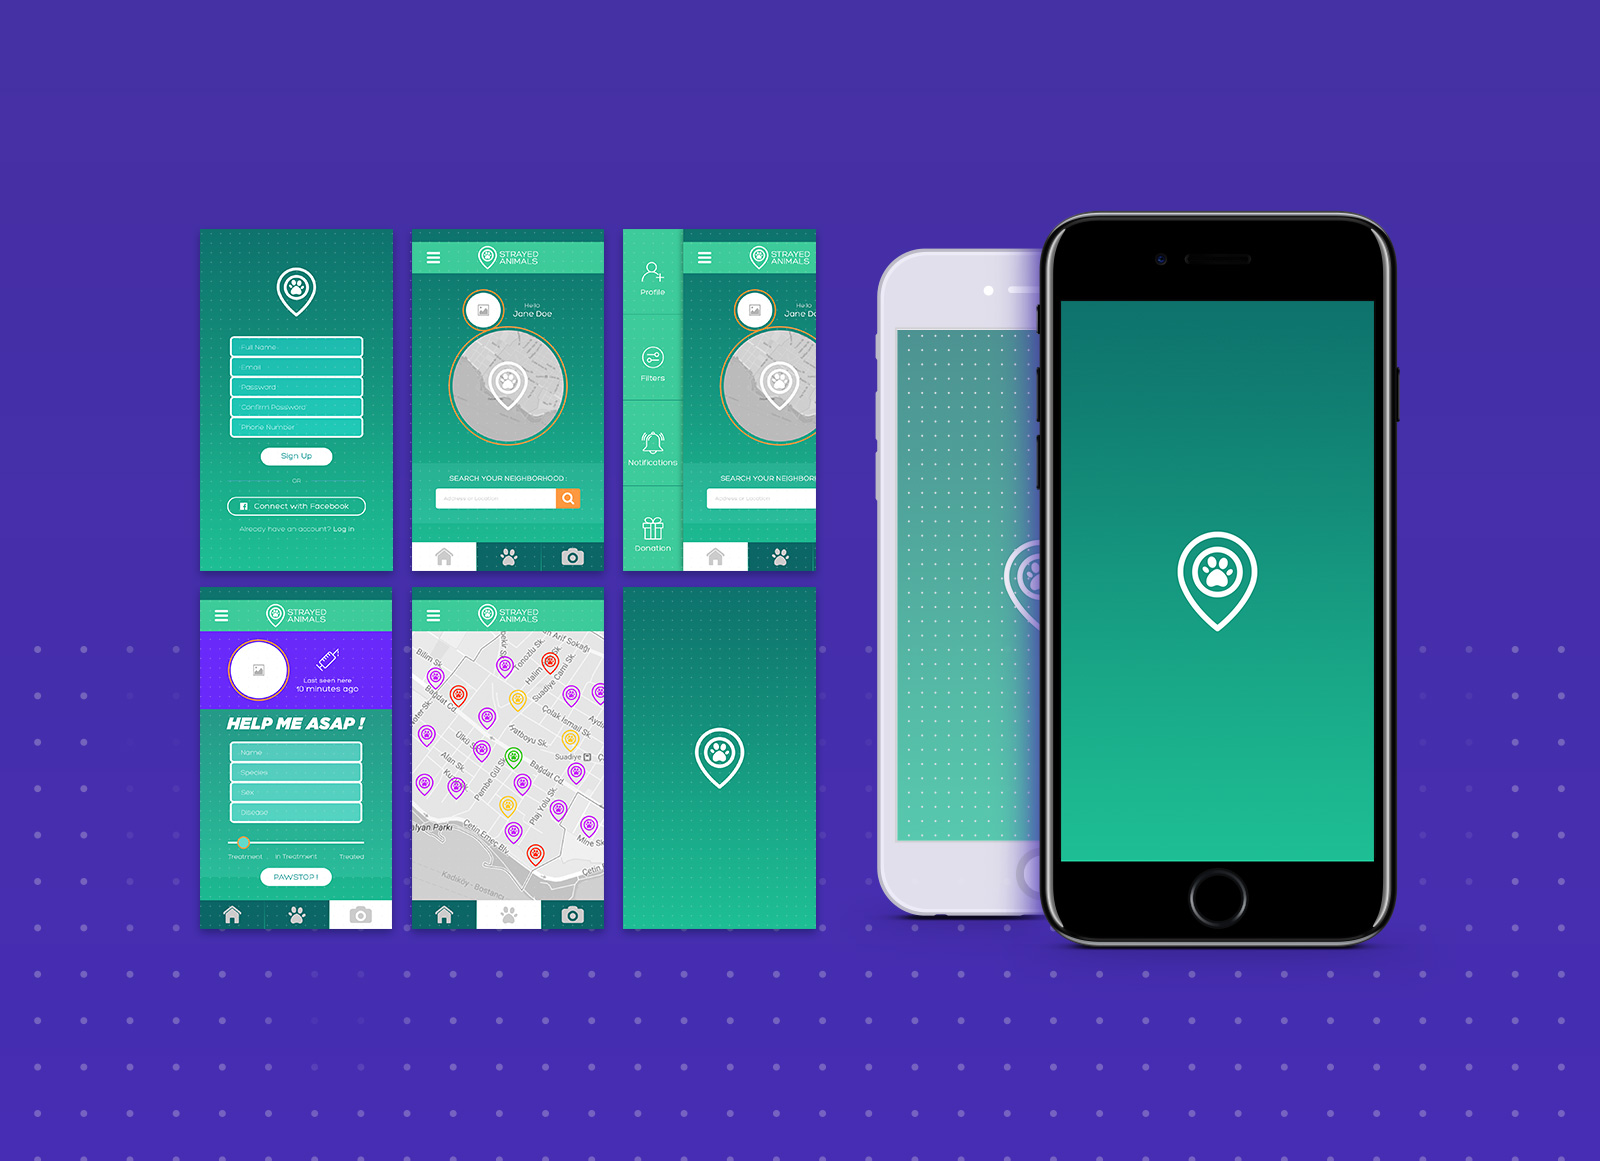 free readymade mobile app design presentation mockup psd good mockups